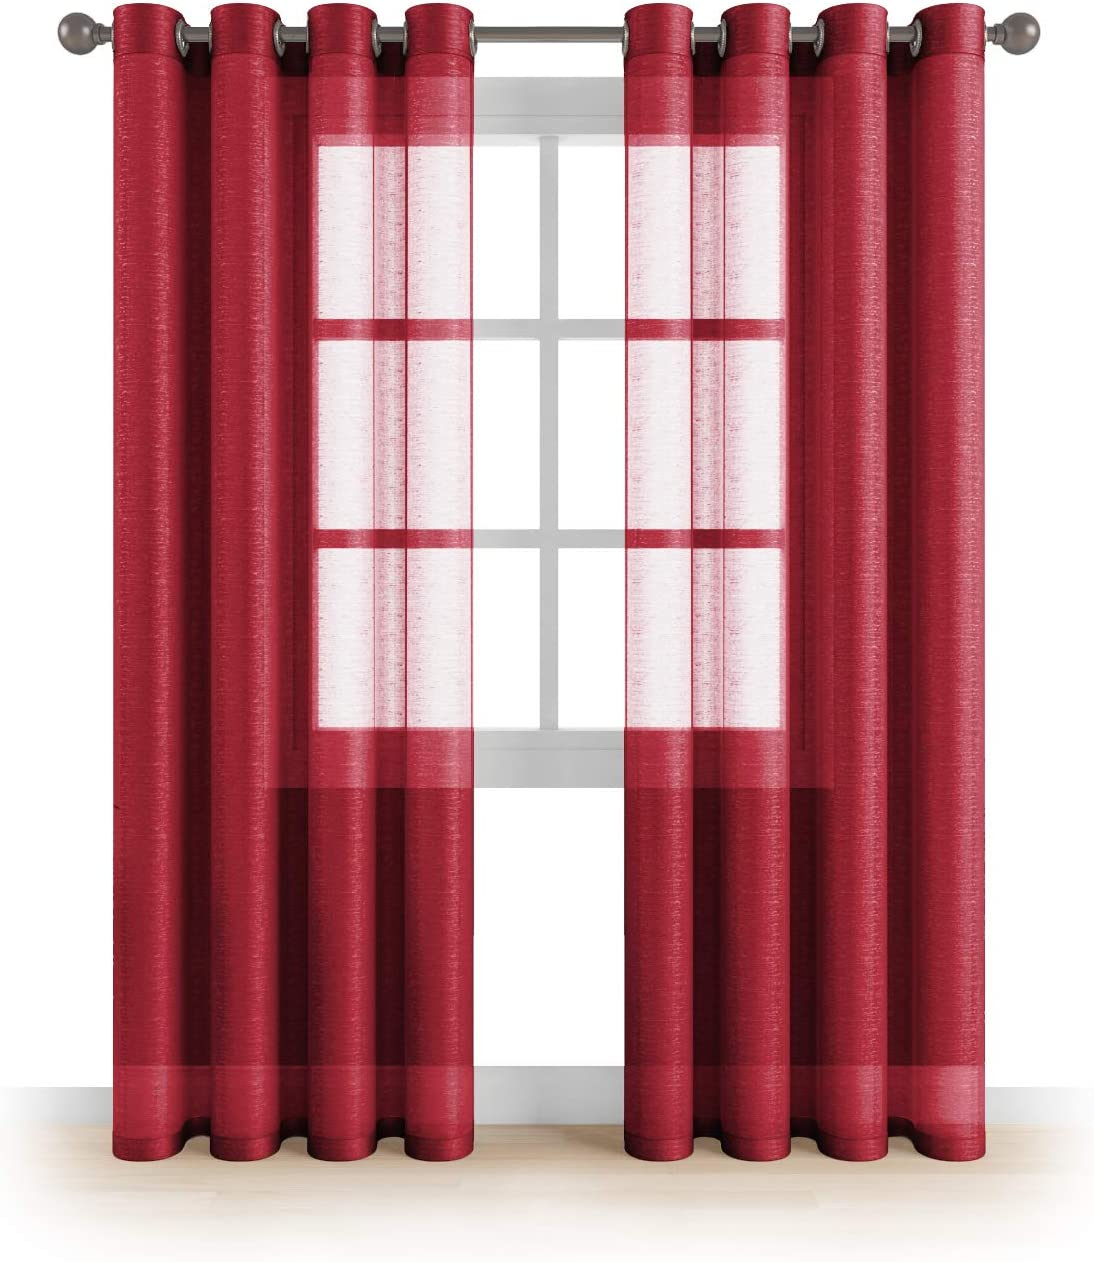 """MEMIAS Window Sheer Elegant Voile Curtains with Grommets for All Rooms Decoration, 2 Panels, Each Panel, 54"""" W x 84"""" L, Merlot"""